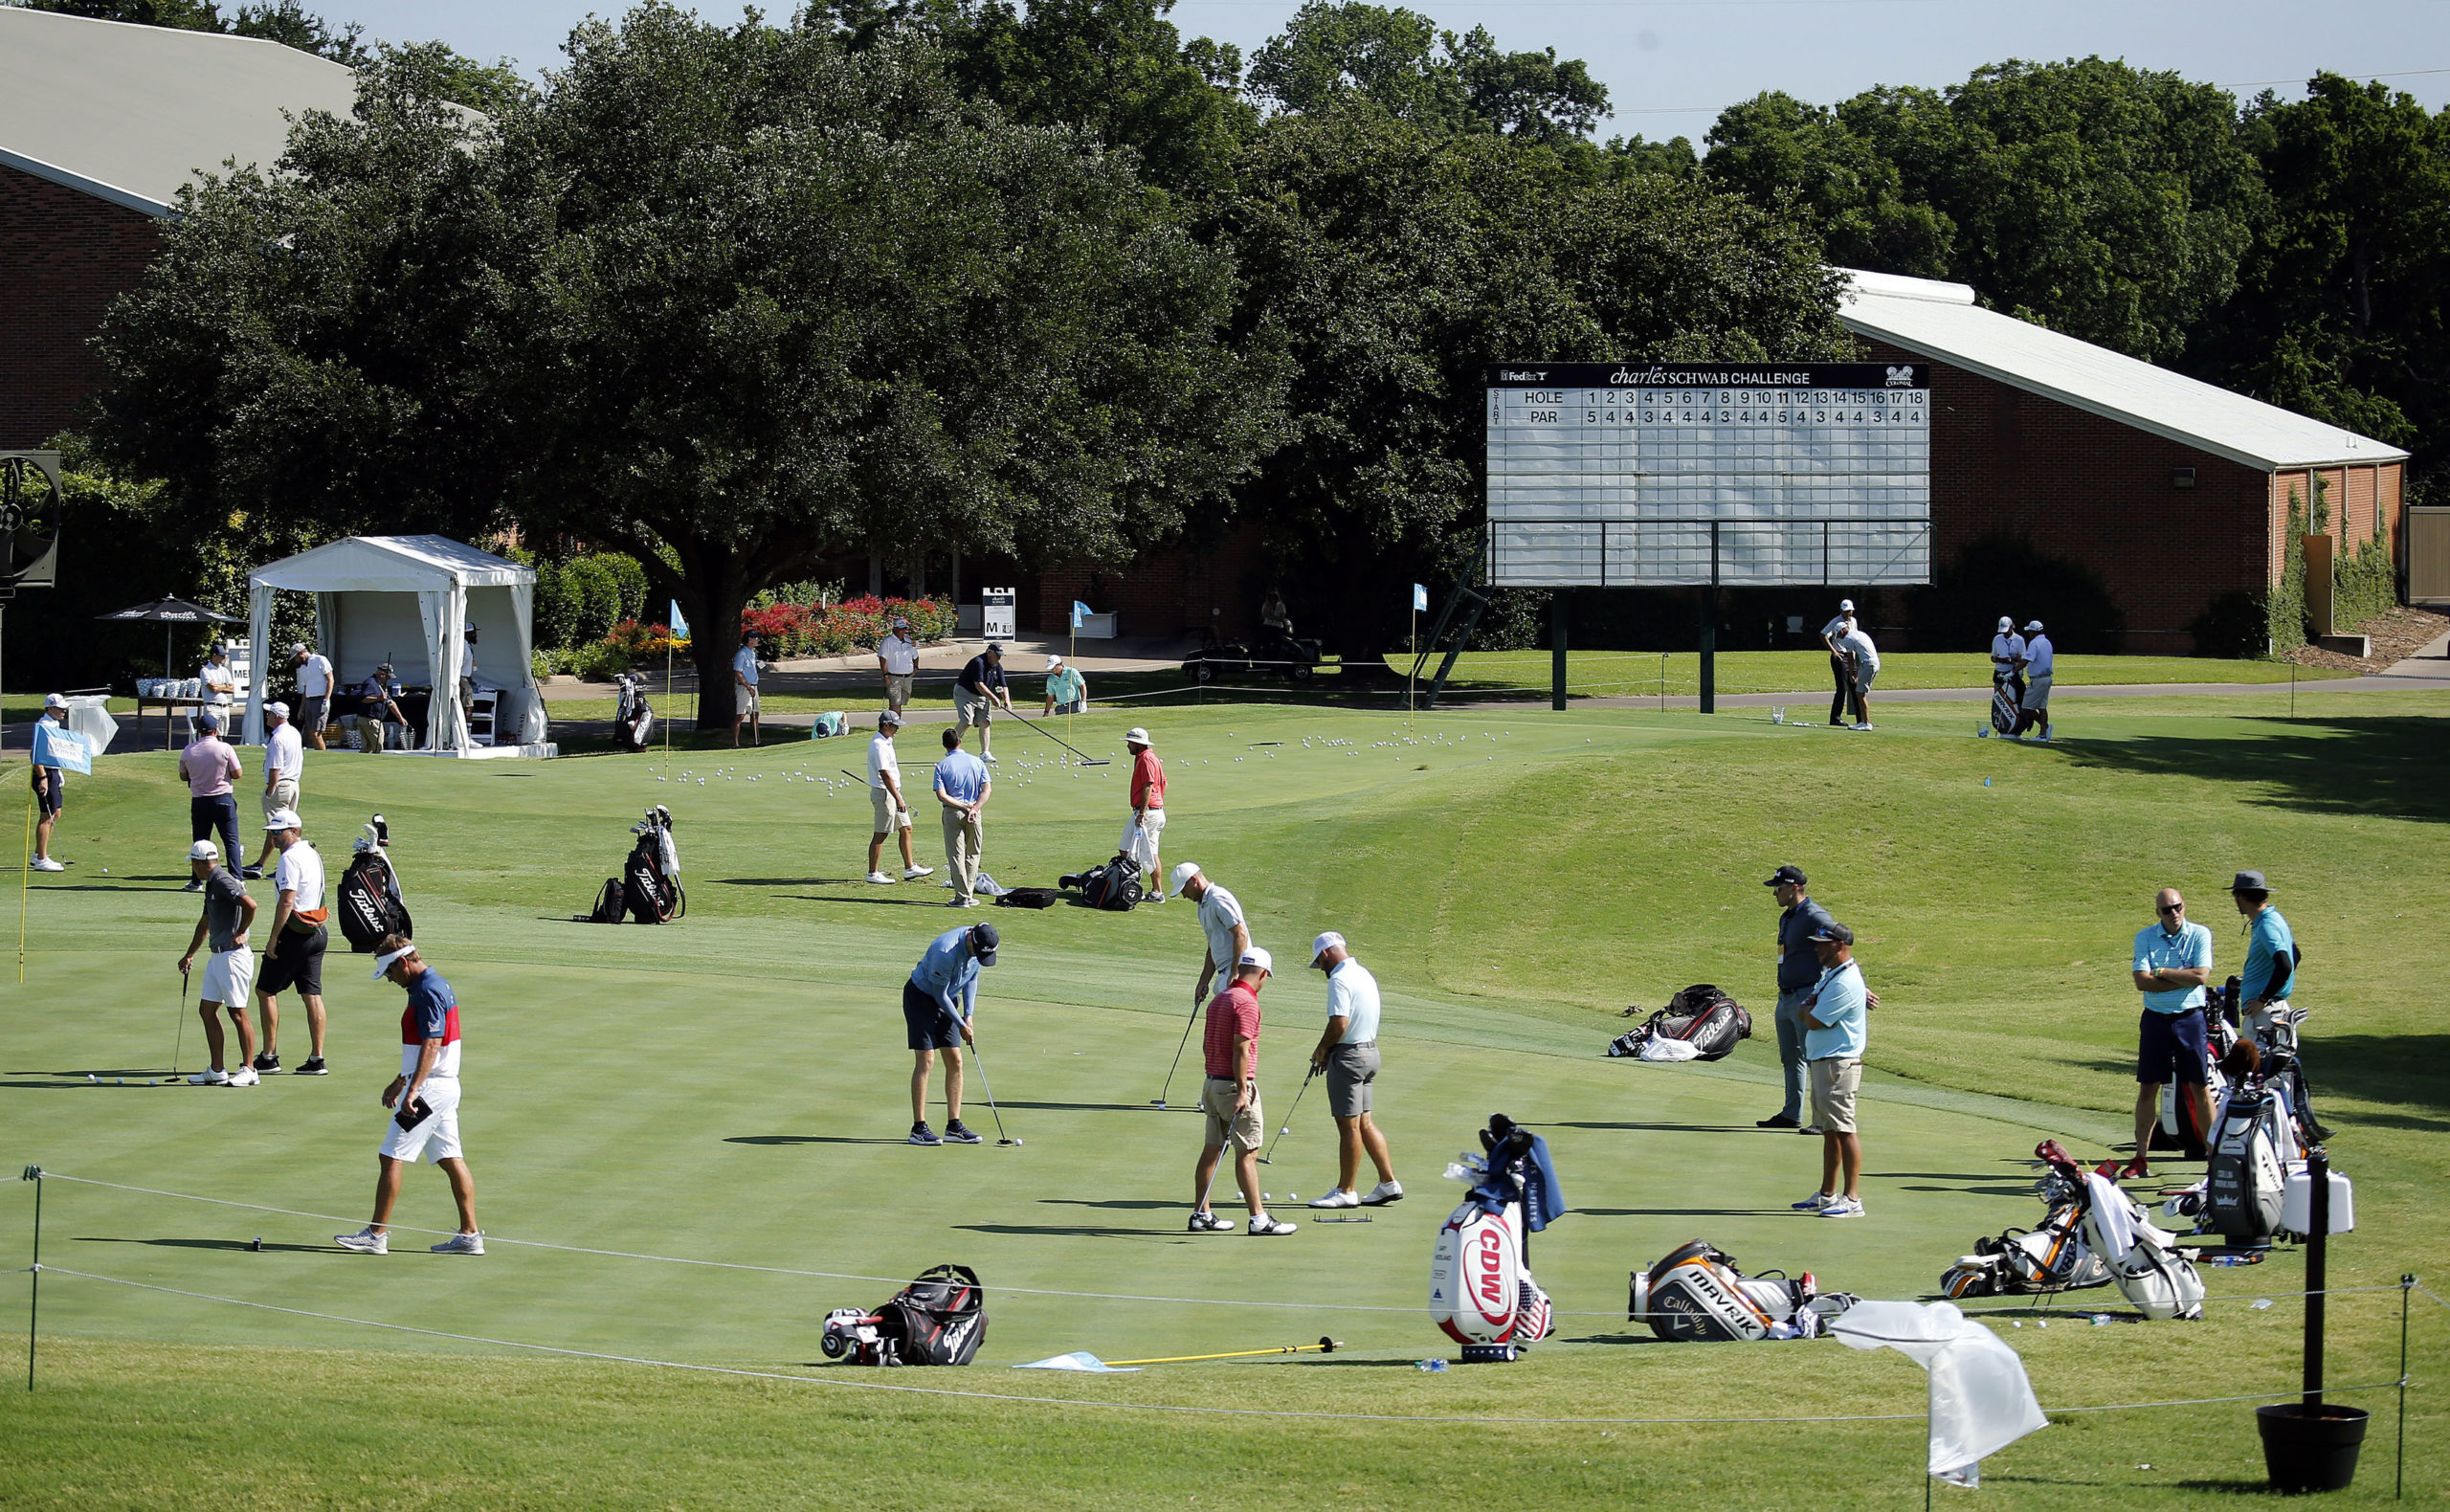 Players practising ahead of the Charles Schwab Challenge a couple of weeks ago.